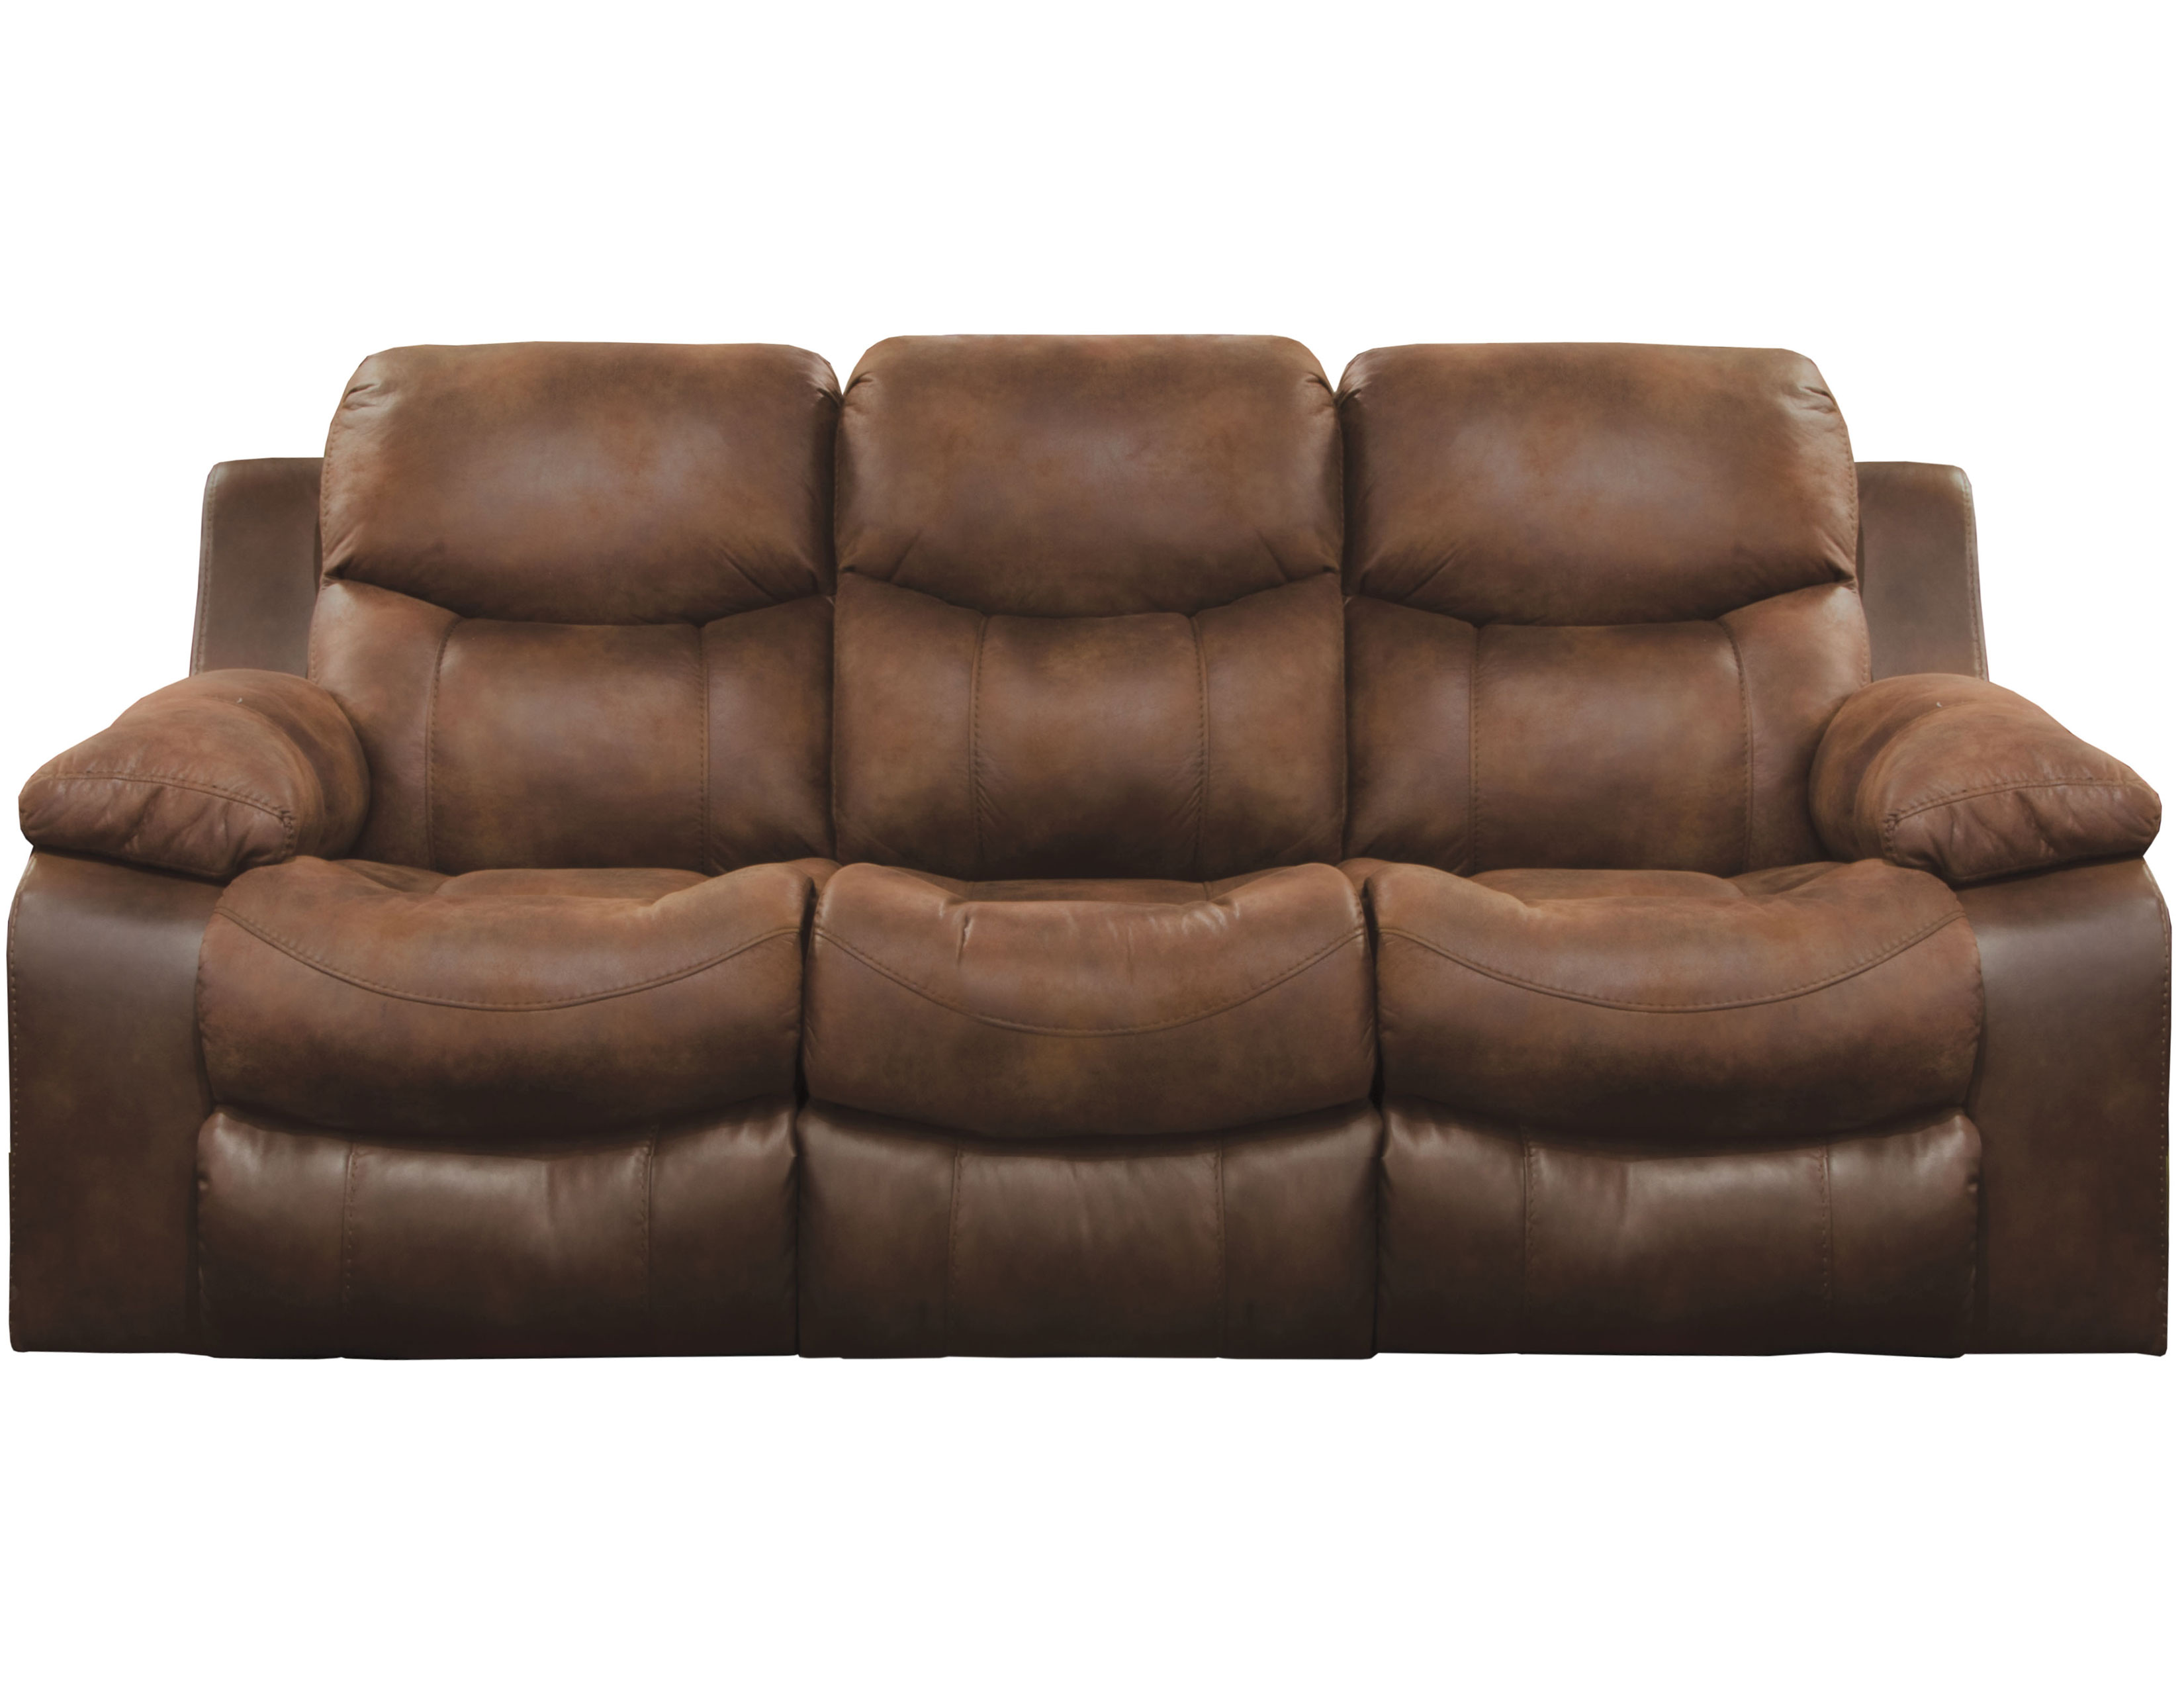 Surprising Henderson 90 Reclining Sofa W Drop Down Sofas And Sectionals Beatyapartments Chair Design Images Beatyapartmentscom